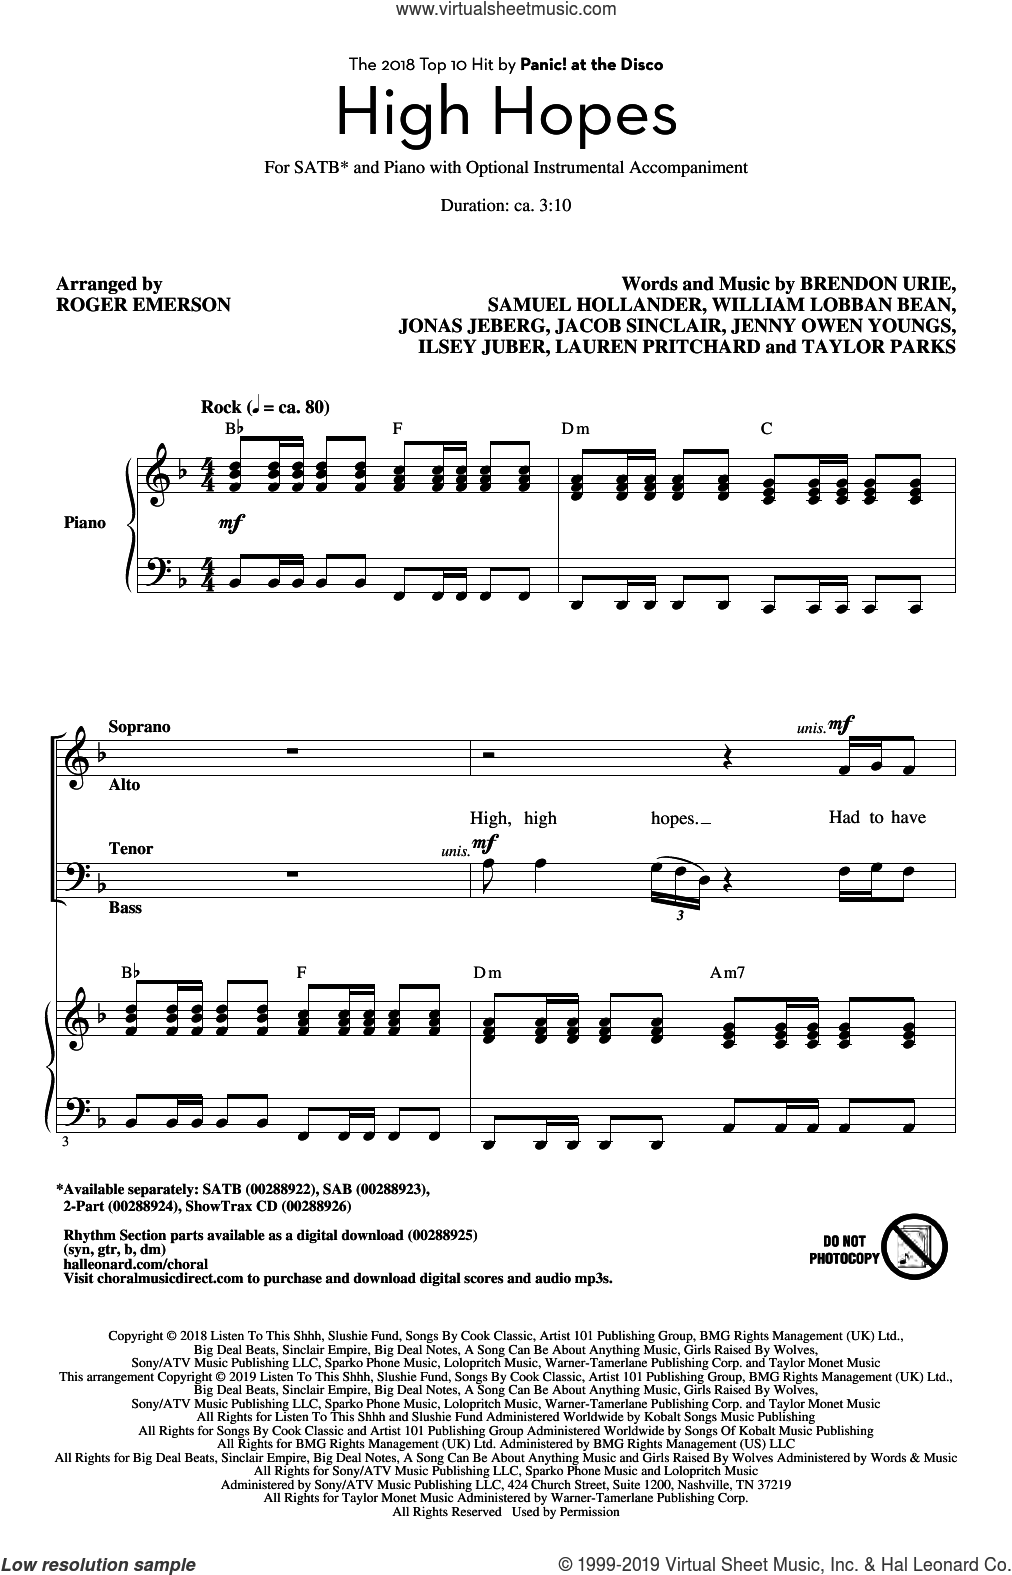 High Hopes (arr. Roger Emerson) sheet music for choir (SATB: soprano, alto, tenor, bass) by Panic! At The Disco, Roger Emerson, Brendon Urie, Ilsey Juber, Jacob Sinclair, Jenny Owen Youngs, Jonas Jeberg, Lauren Pritchard, Sam Hollander, Taylor Parks and William Lobban Bean, intermediate skill level